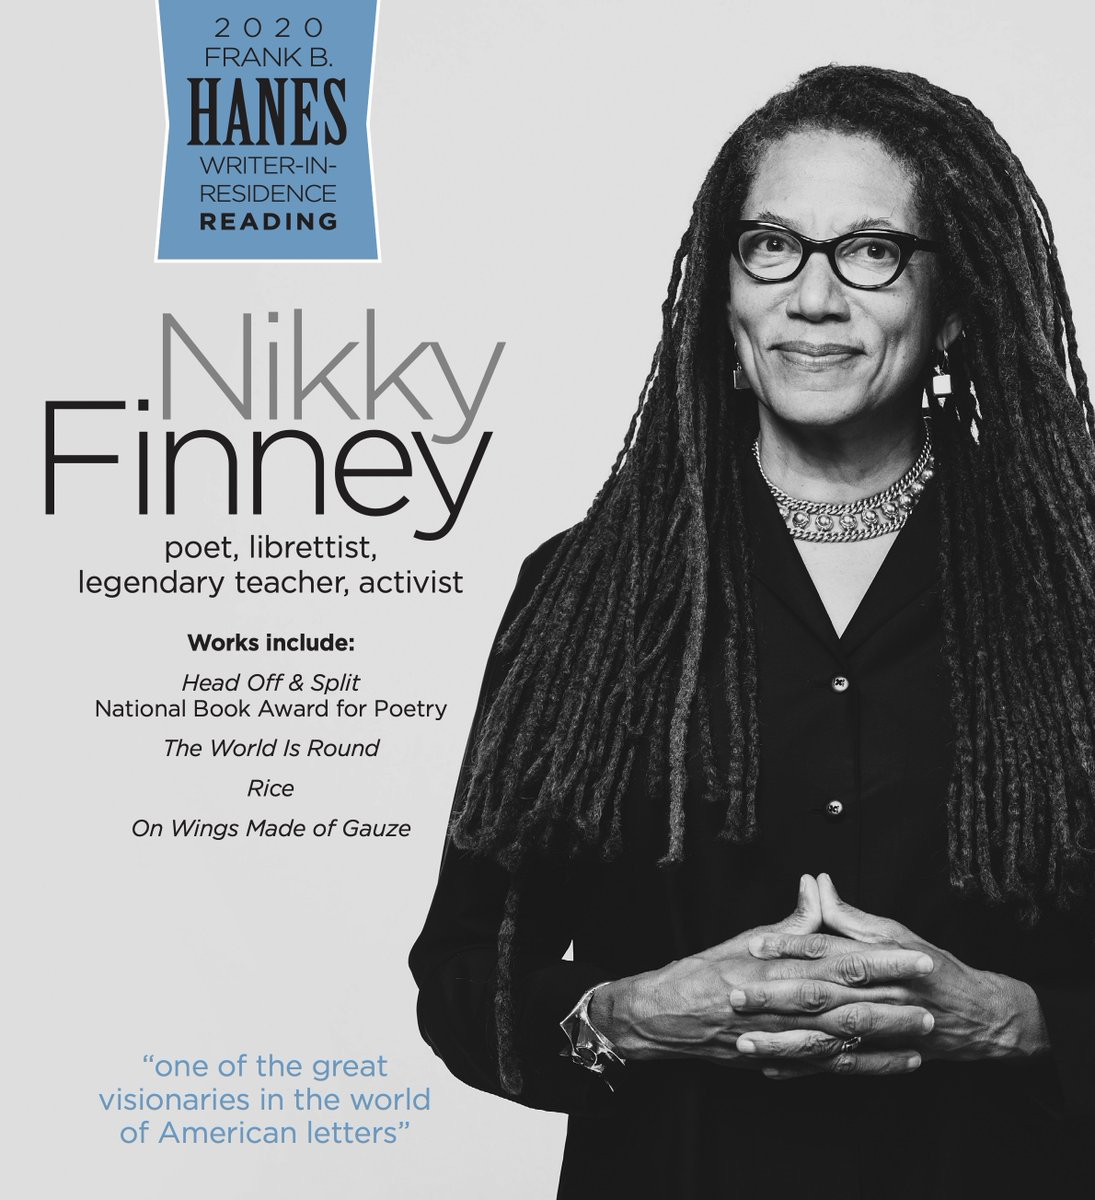 Nikky Finney comes to campus next week as @UNCECL's Hanes Writer-in-Residence. Her visit will also include two panels: https://t.co/BvRVx3GaB3 https://t.co/T92ssgNDMD